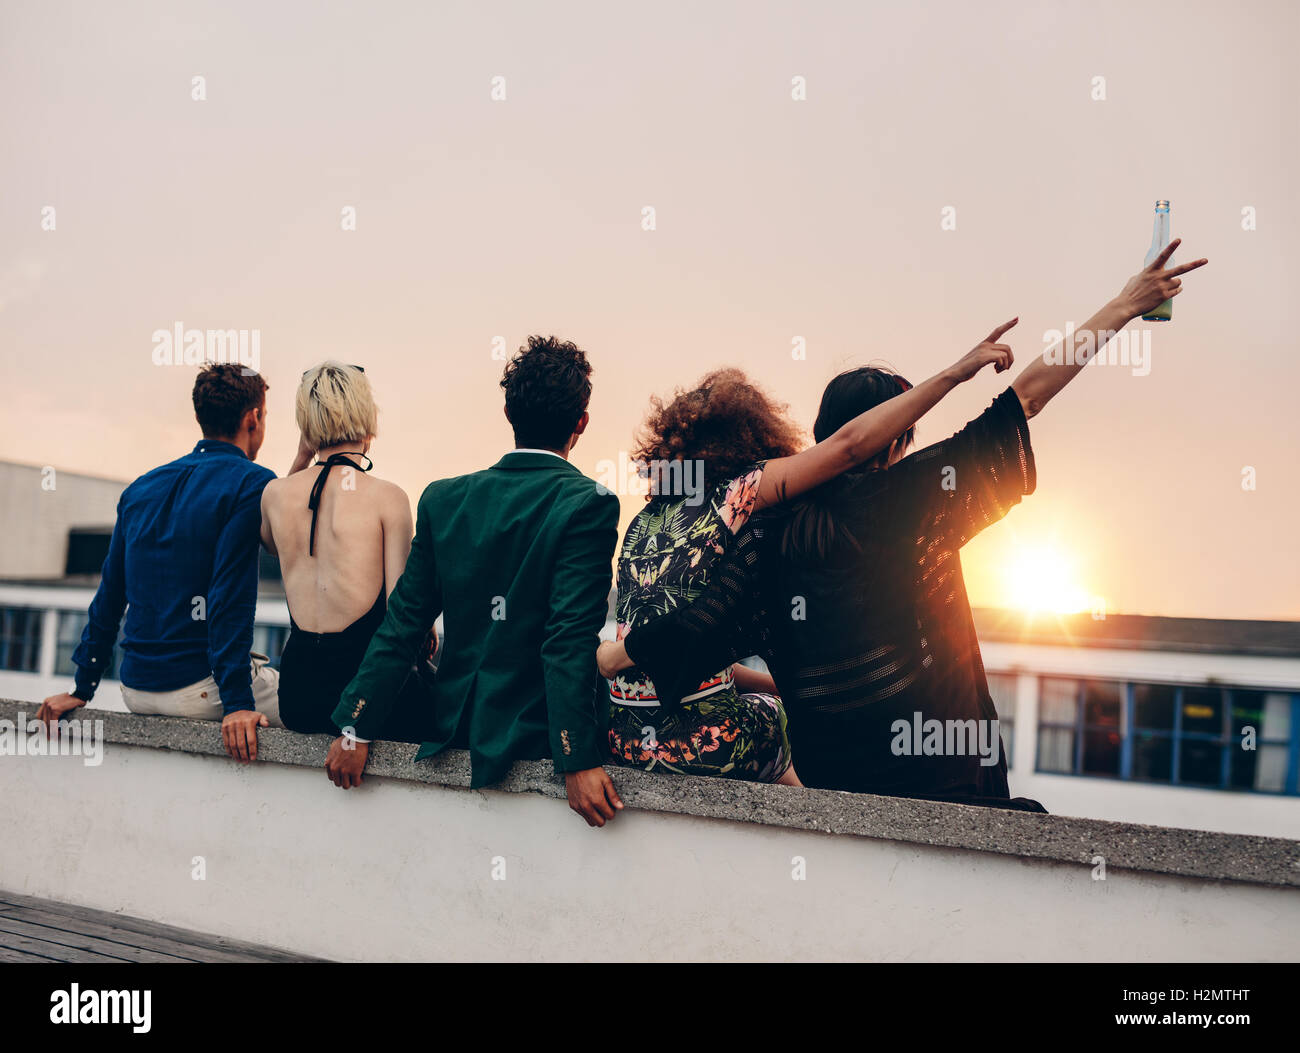 Group of friends partying on terrace with drinks. Young men and women enjoying drinks on rooftop at sunset. - Stock Image